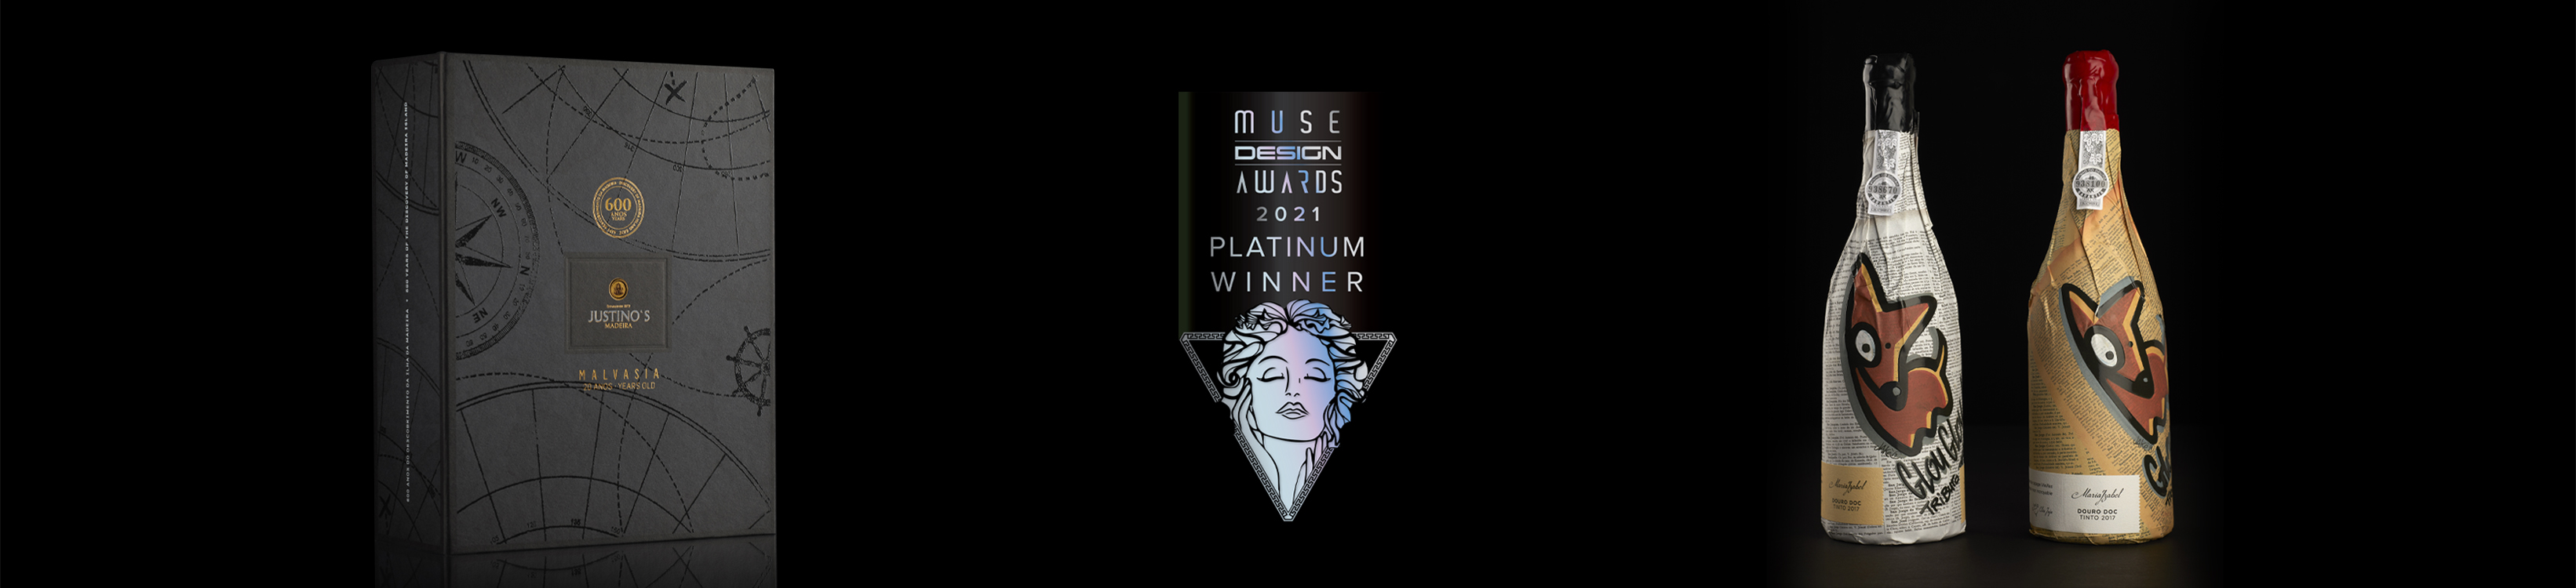 Omdesign multipremiada nos EUA nos Muse Awards 2021